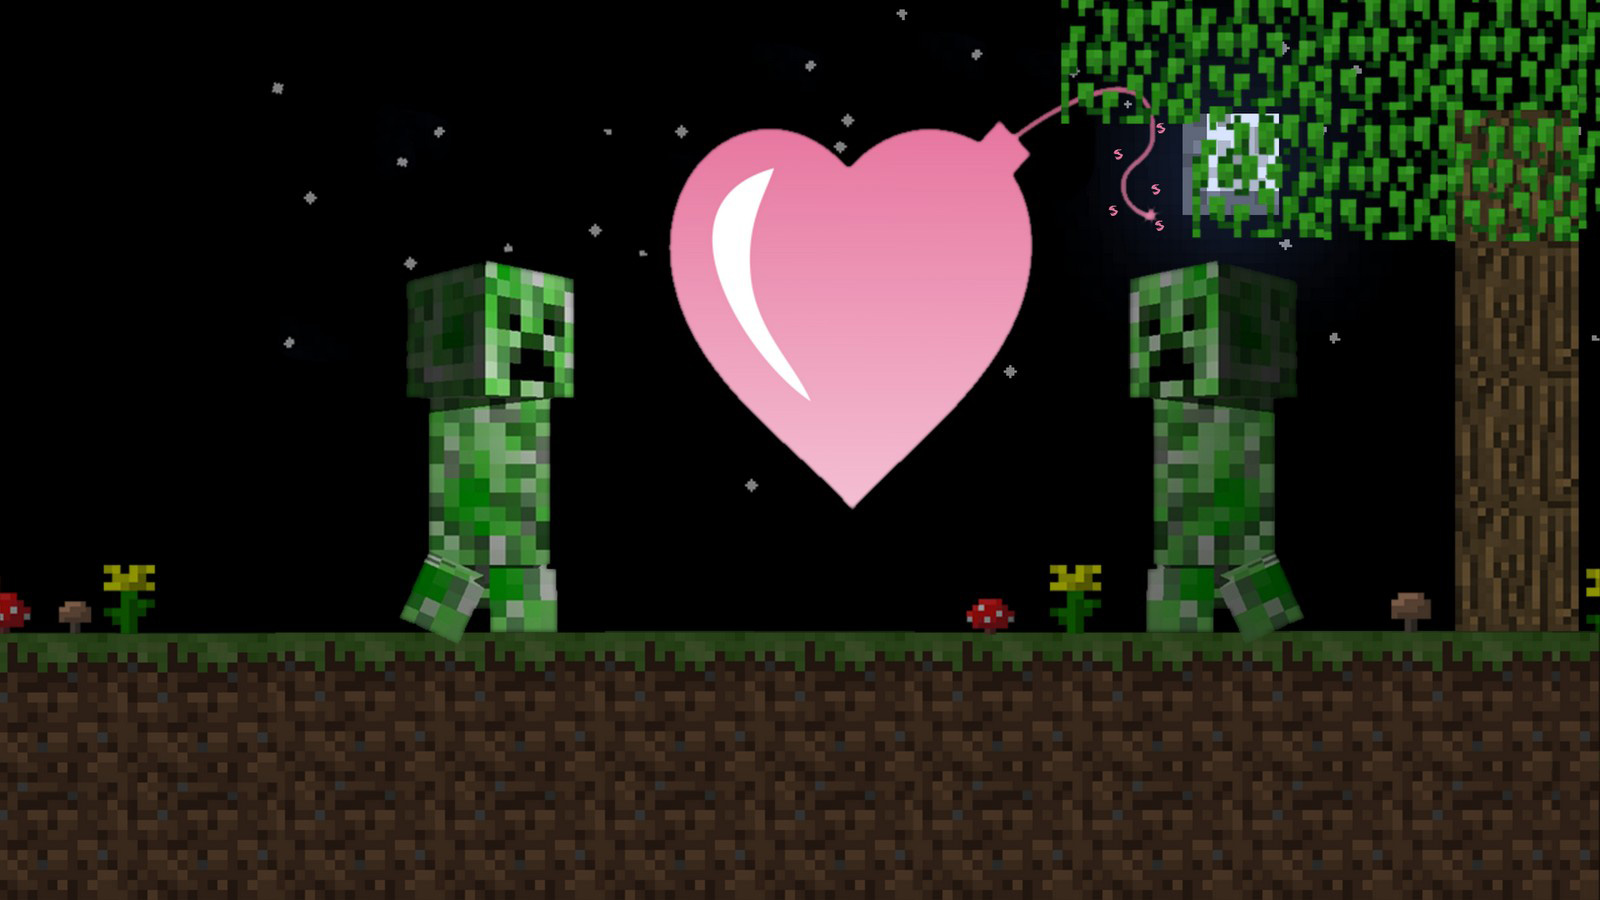 Minecraft Wallpaper Hd Download Minecraft Wallpaper Creepers Bombing Exploding Love